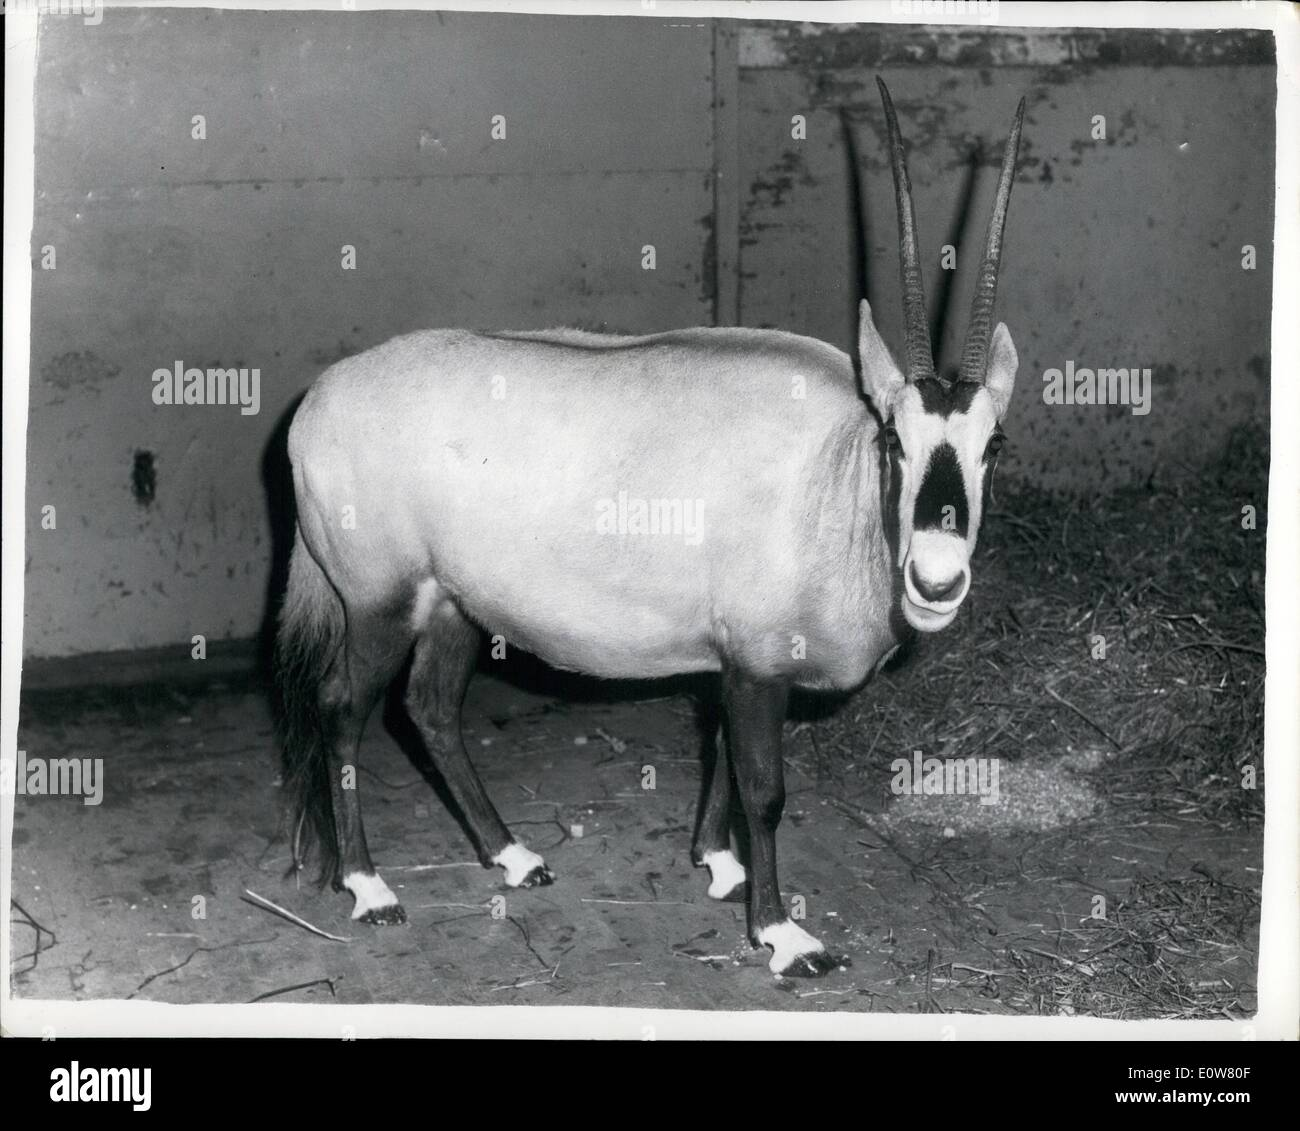 Jan. 01, 1962 - Desert Massacre To Please Harem: Sixteen oryx, giant members of the antelope family and some of the world's rarest animals, were mown down by machine-gun fire during a massacre organized by a desert chief to boost his reputation with the women of his harem. Before the mass killing in Arabia only about 40 oryx were thought to be still in existence - including one prized specimen at the London Zoo. The original herds shrank because among Arabs the killing of an oryx is supposed to be a mark of a man's virility - Stock Image